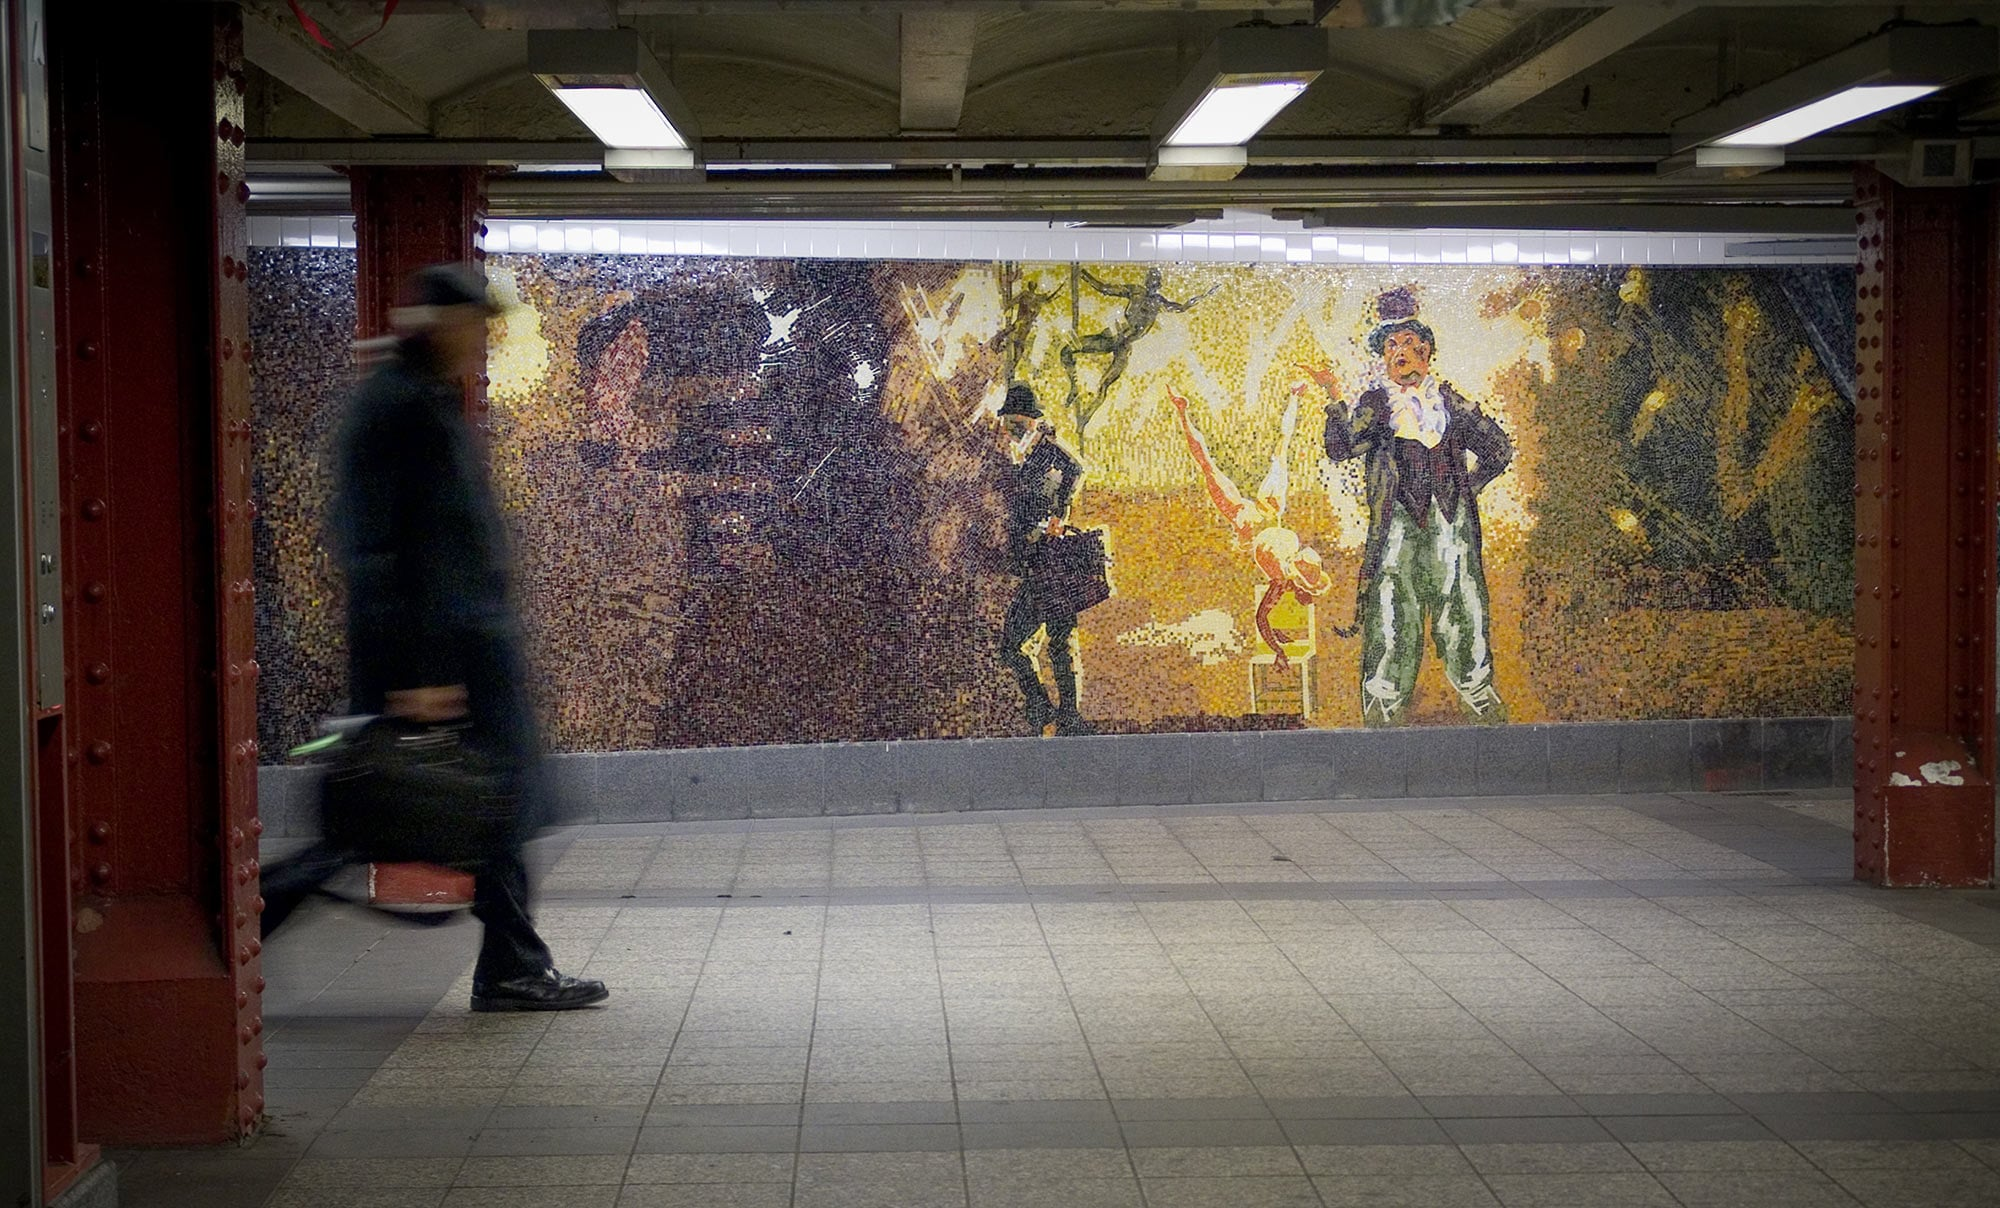 Garden of Circus Delights, 2001, glass mosaic.  34th St. Penn Station (main wall), 72 x 60ft